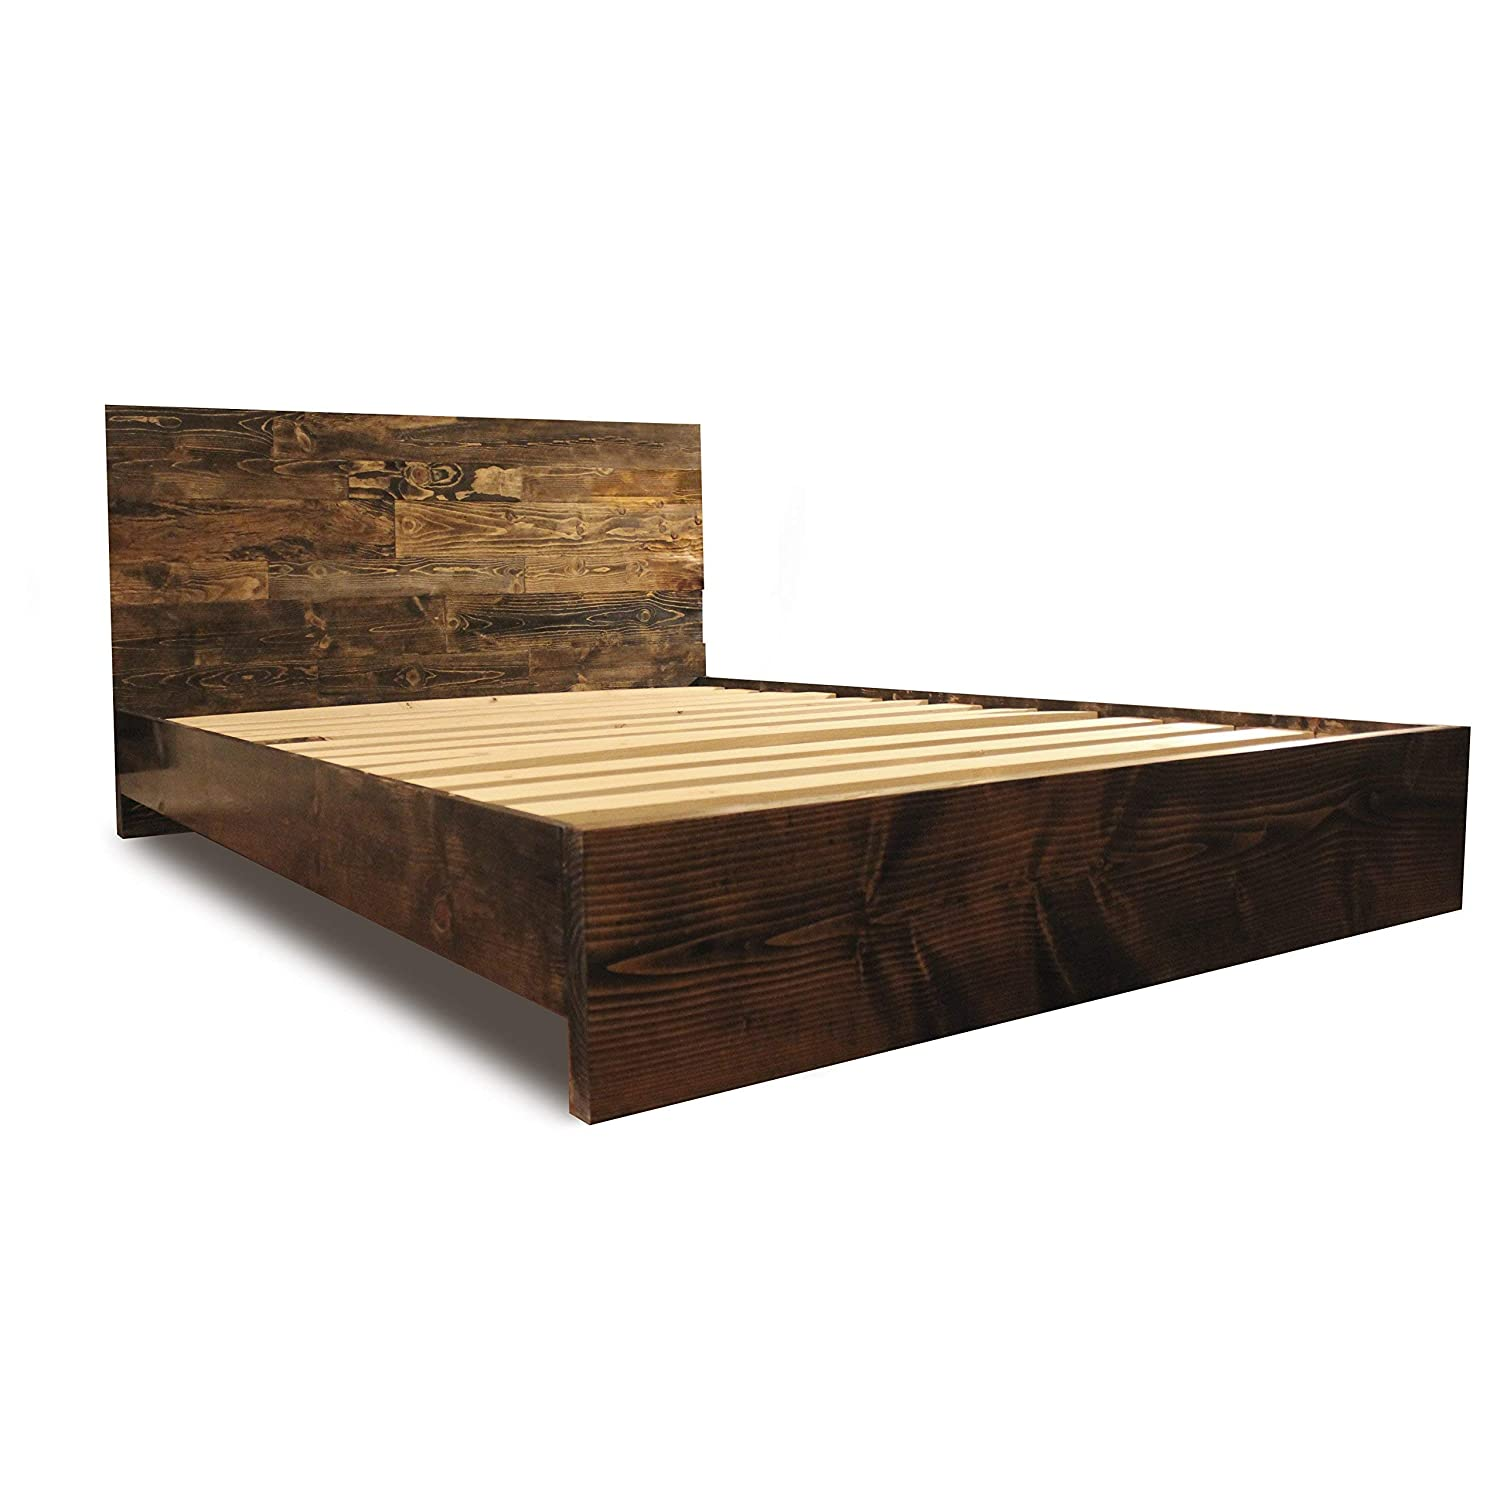 Wooden Platform Bed Frame and Headboard Modern and Contemporary Rustic and Reclaimed Style Old World Solid Wood